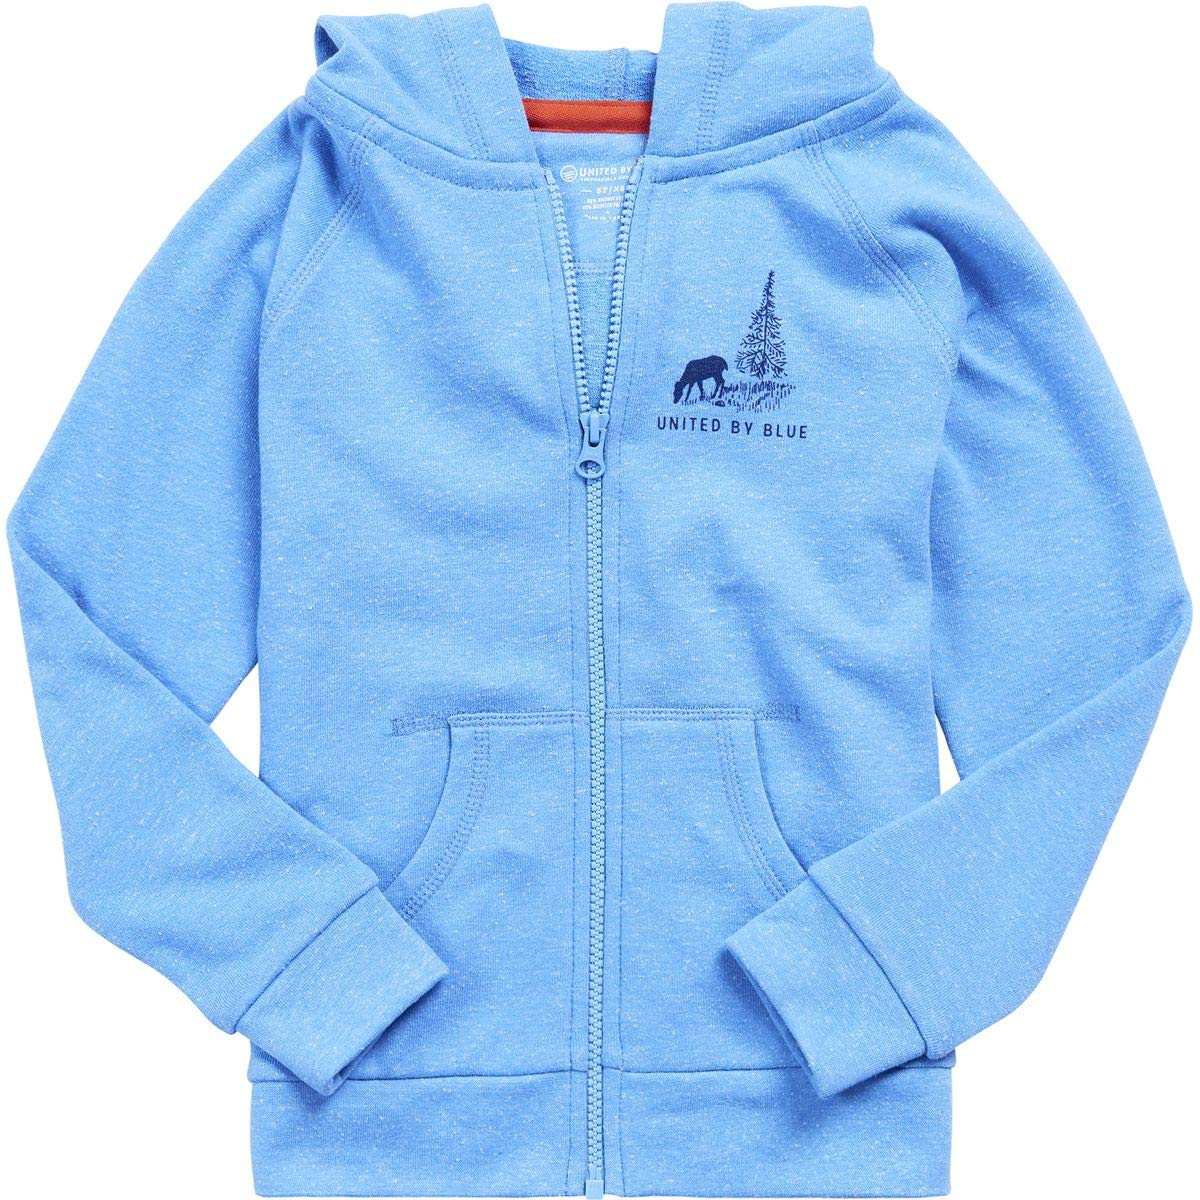 United By Blue Mountain River Sweatshirt - Girls' 601-0028-36-M